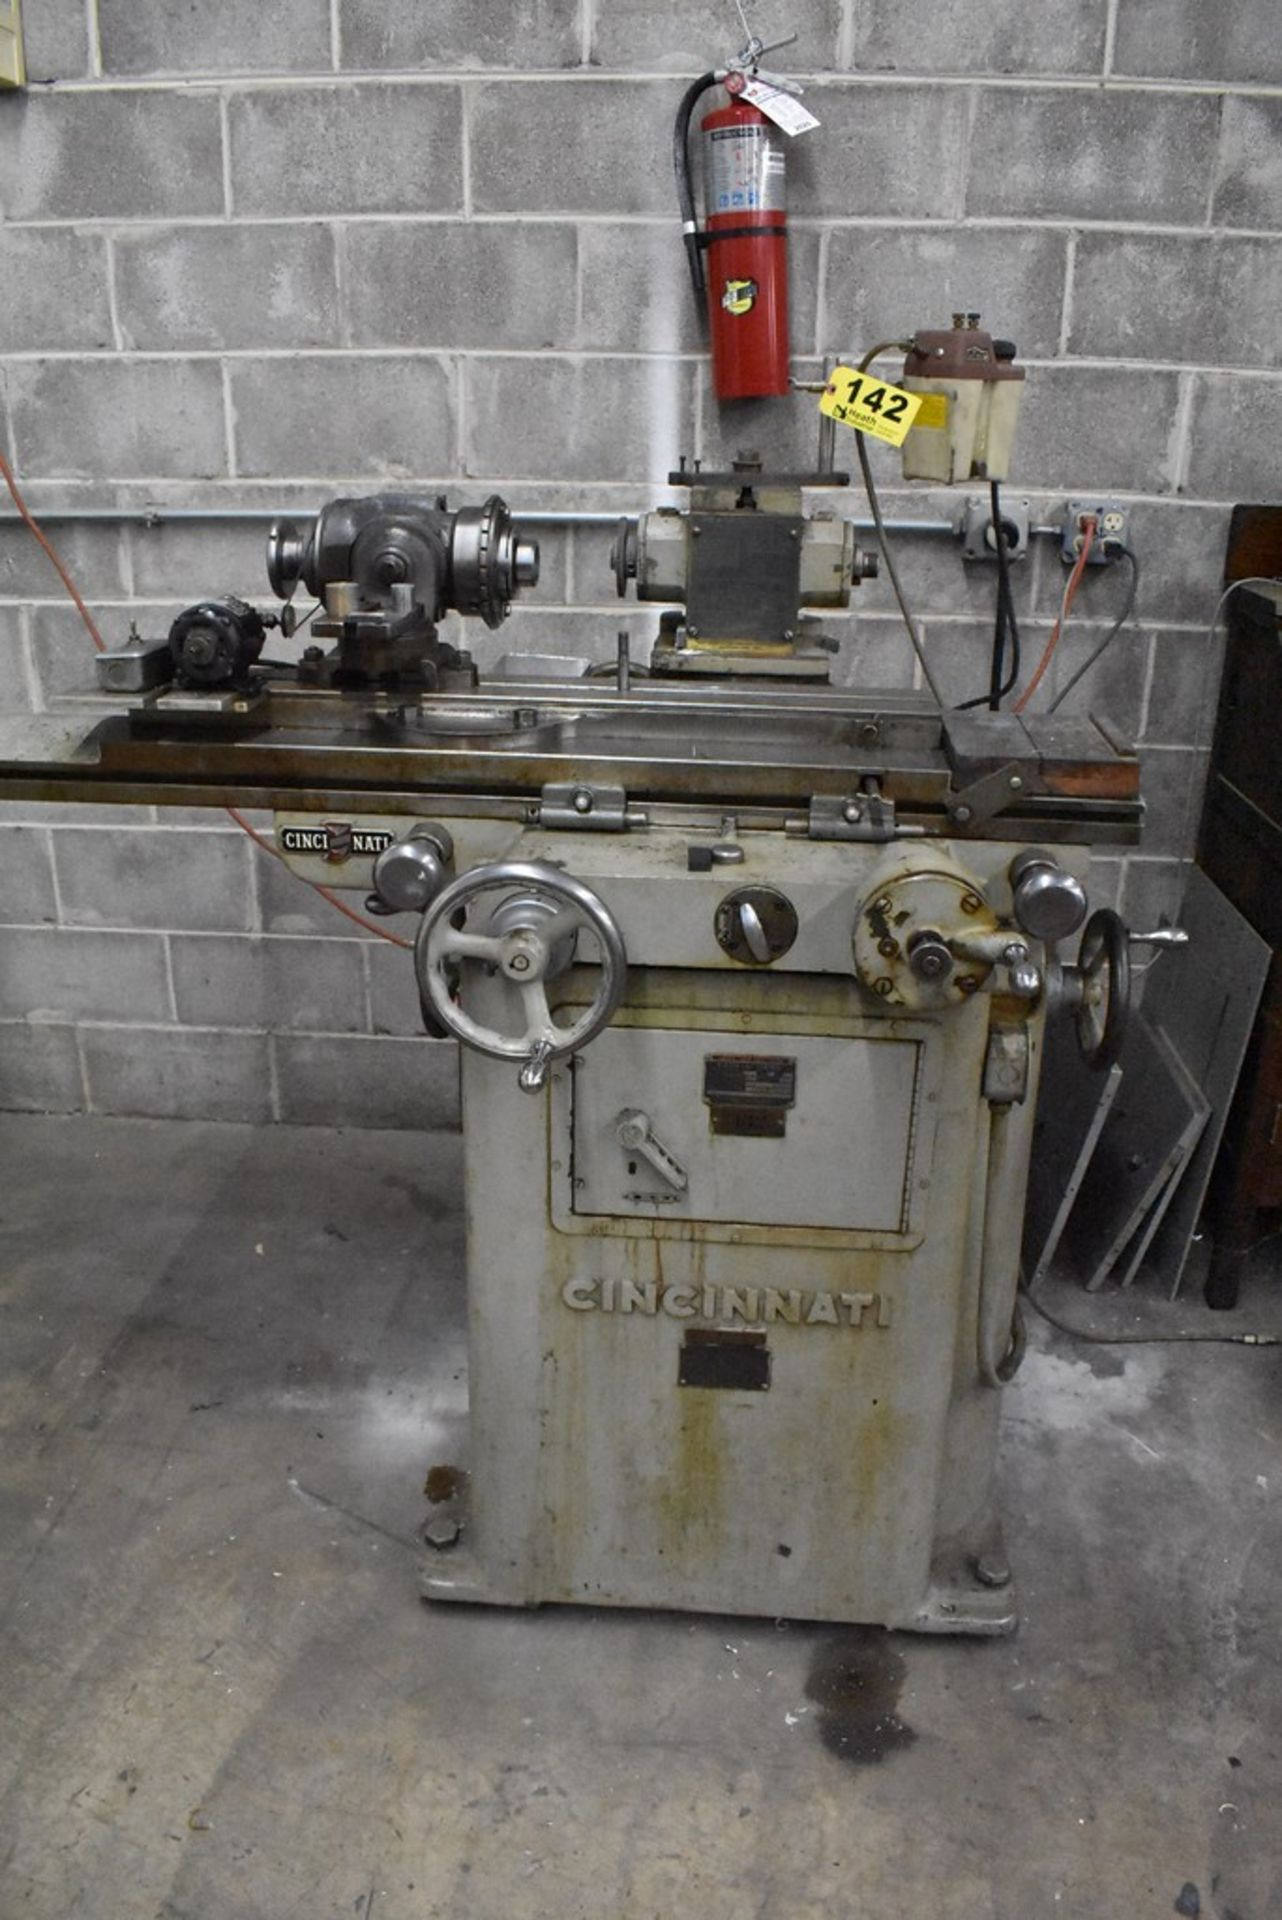 CINCINNATI NO. 2 TOOL AND CUTTER GRINDER, S/N 1D2T1Z-771, WITH MOTORIZED WORK HEAD - Image 8 of 14